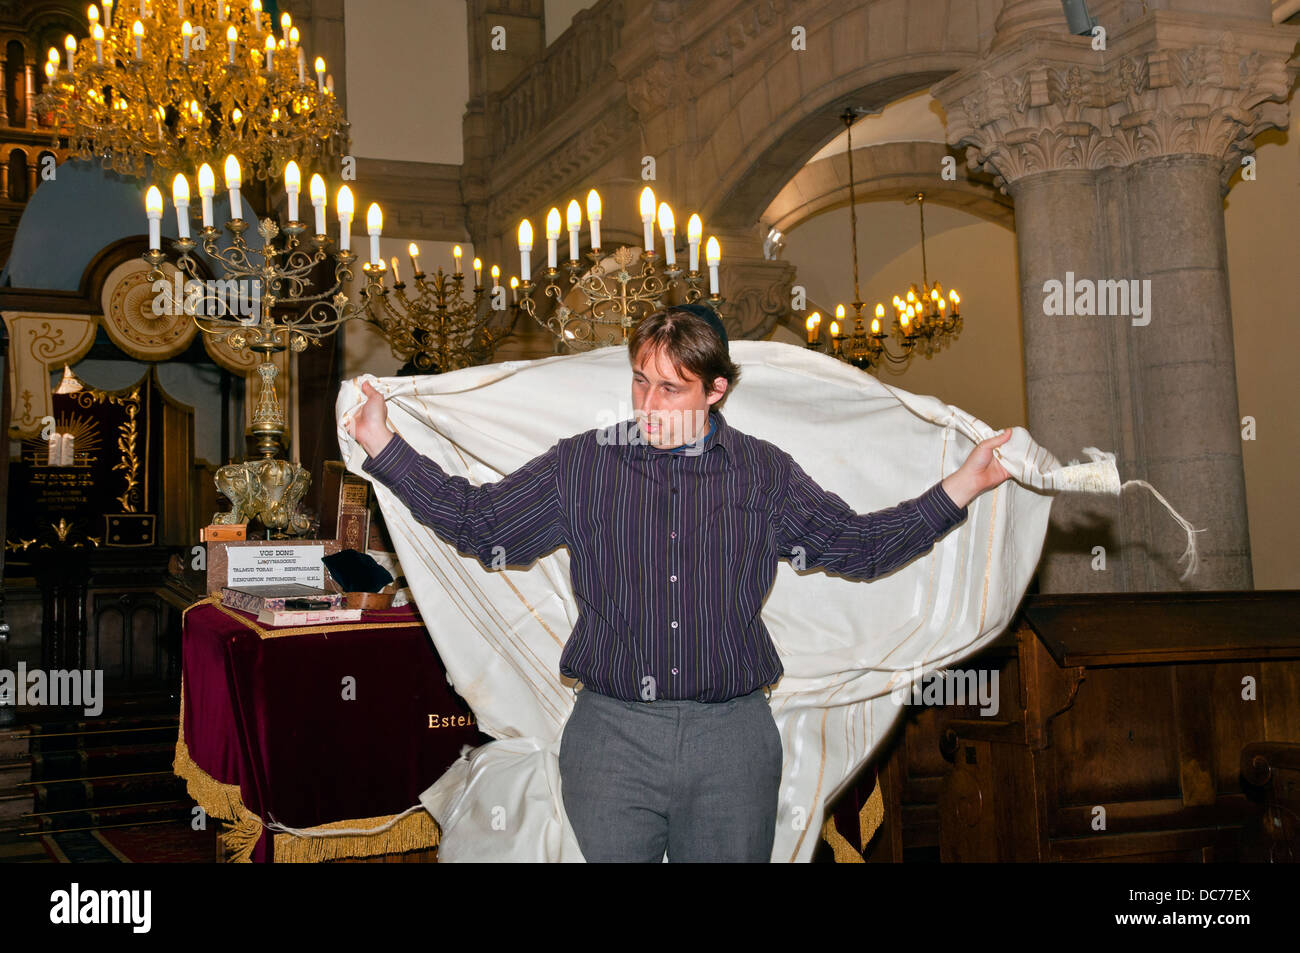 Young Rabbi in a synagogue tells students about the attributes of the Jewish religion, Lyon, France, Europe Stock Photo